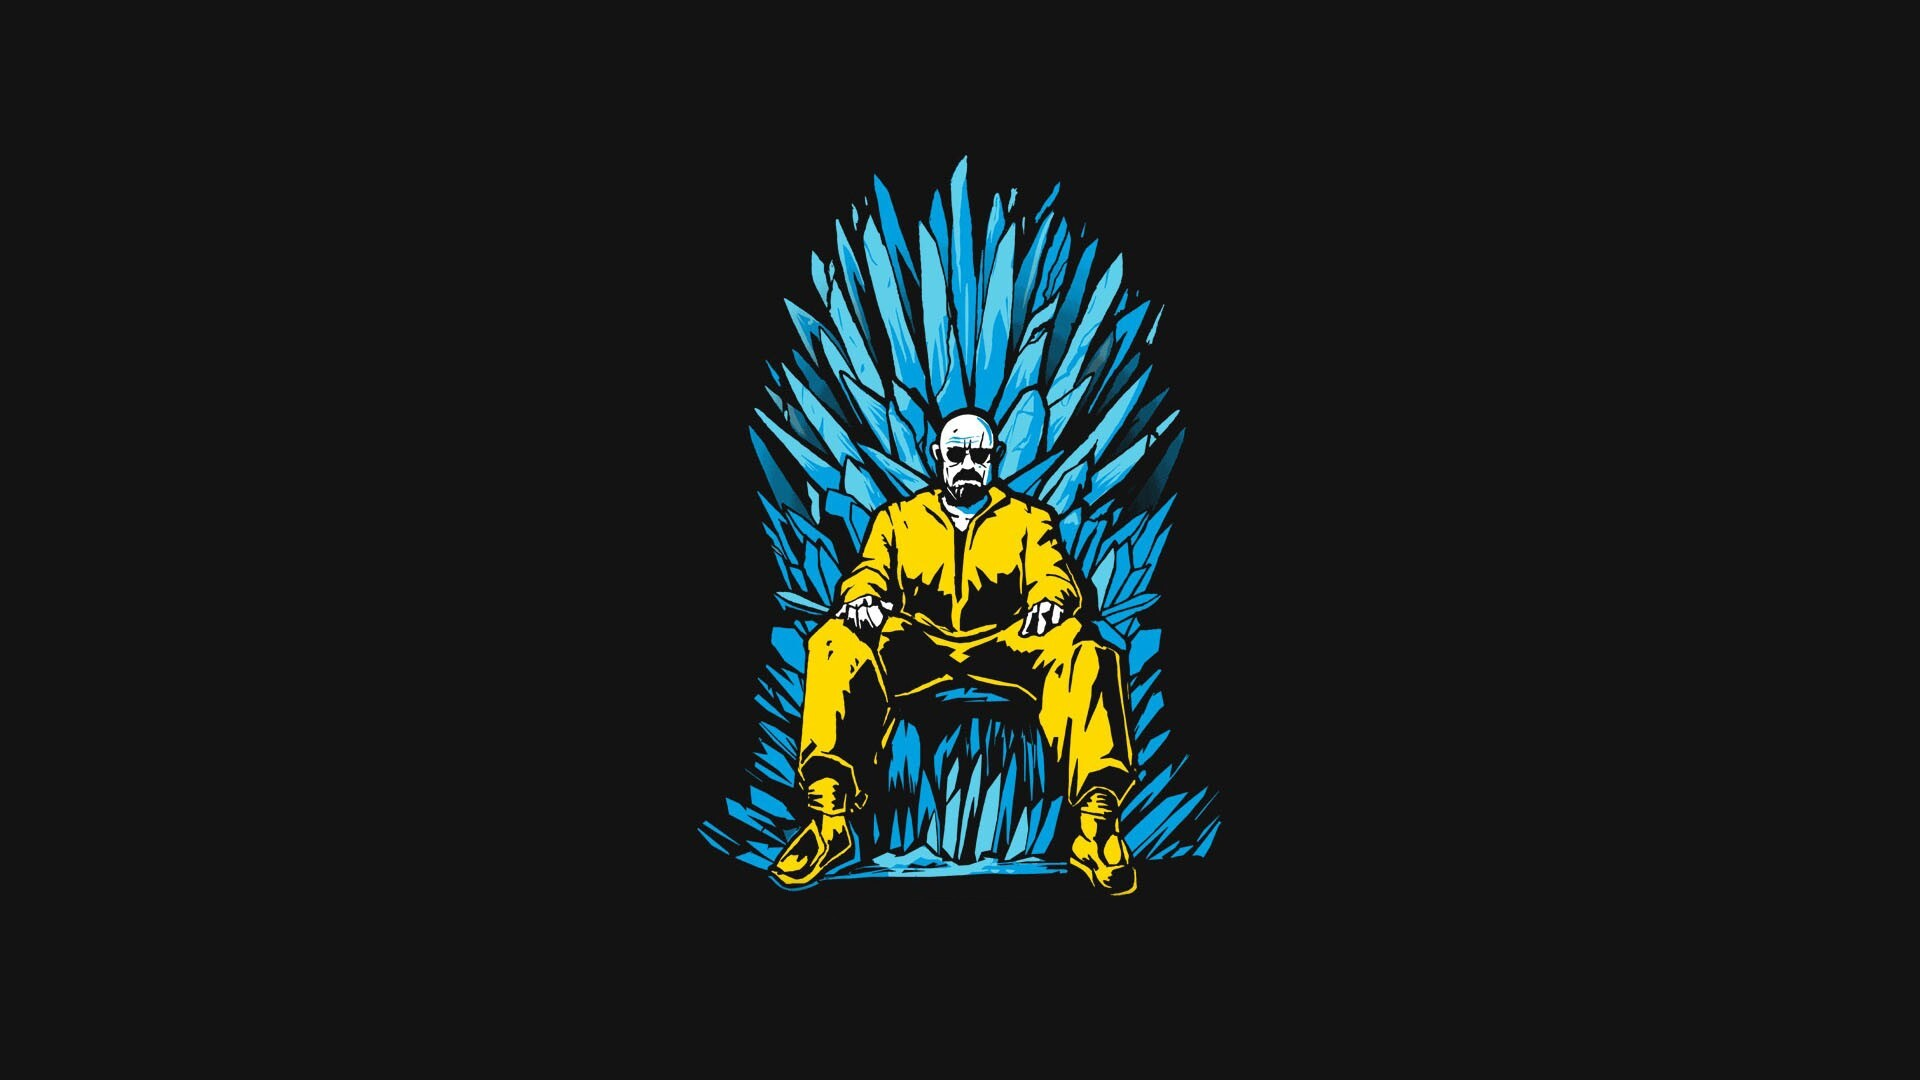 1920x1080 Walter White Game Of Thrones Minimalism Laptop Full Hd